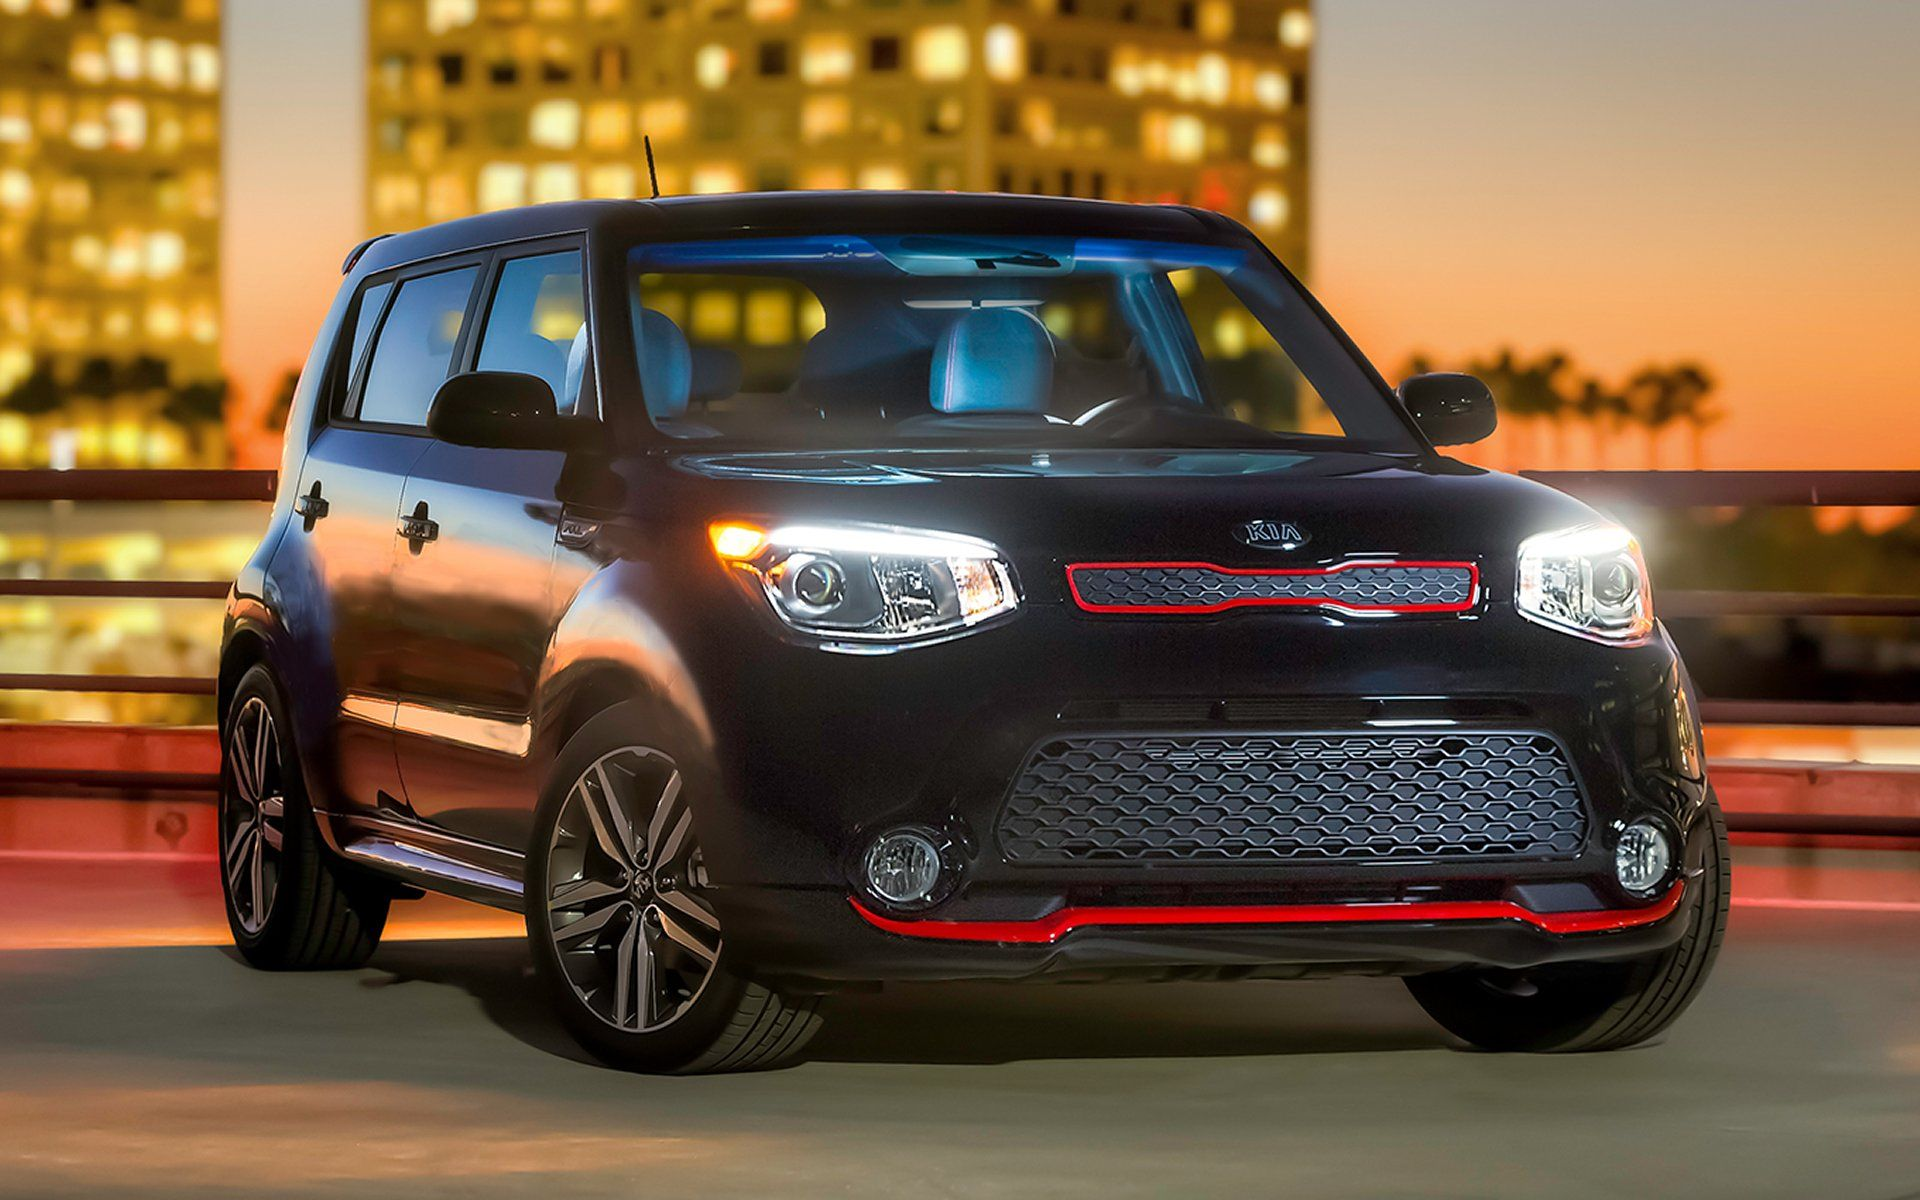 black kia soul with red trim and sunroof 2015 photo